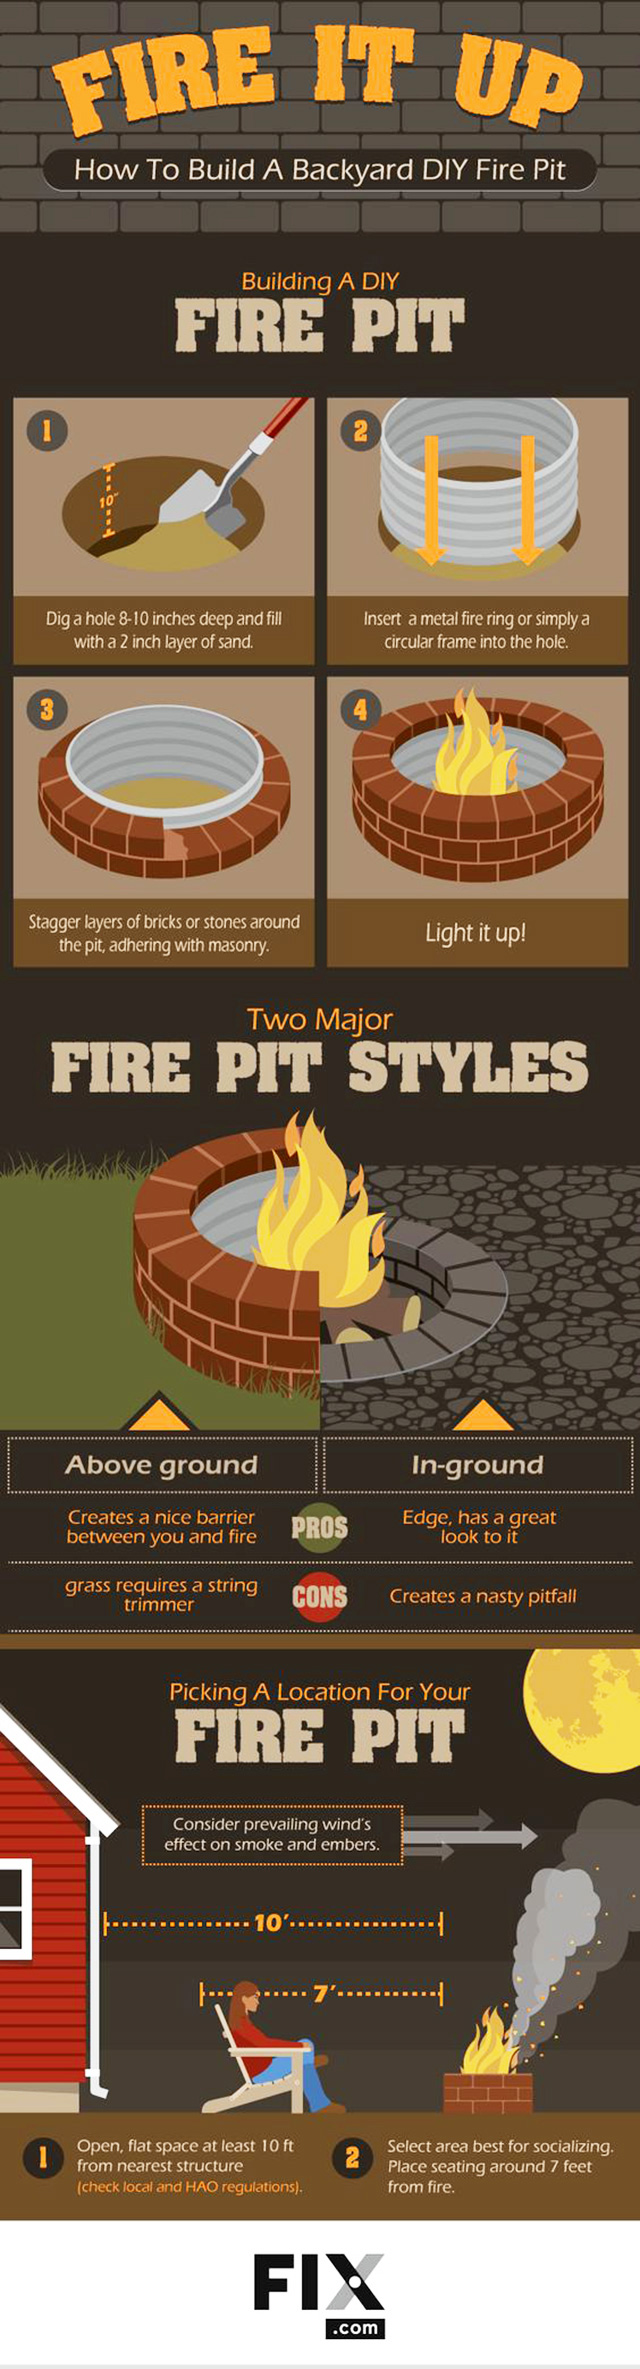 5 Steps to Building A Backyard Fire Pit